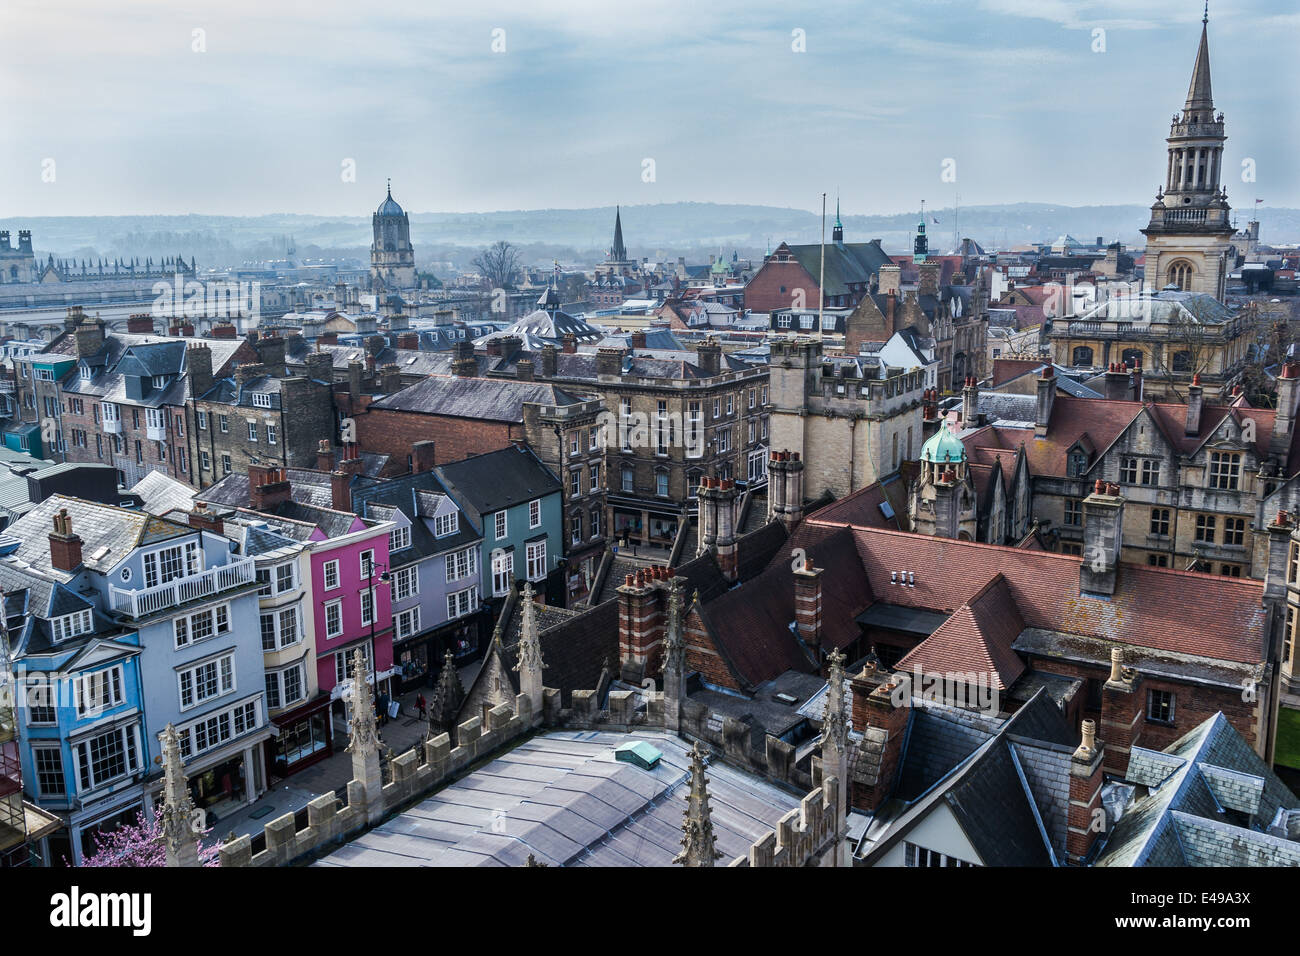 Oxford rooftops - Stock Image